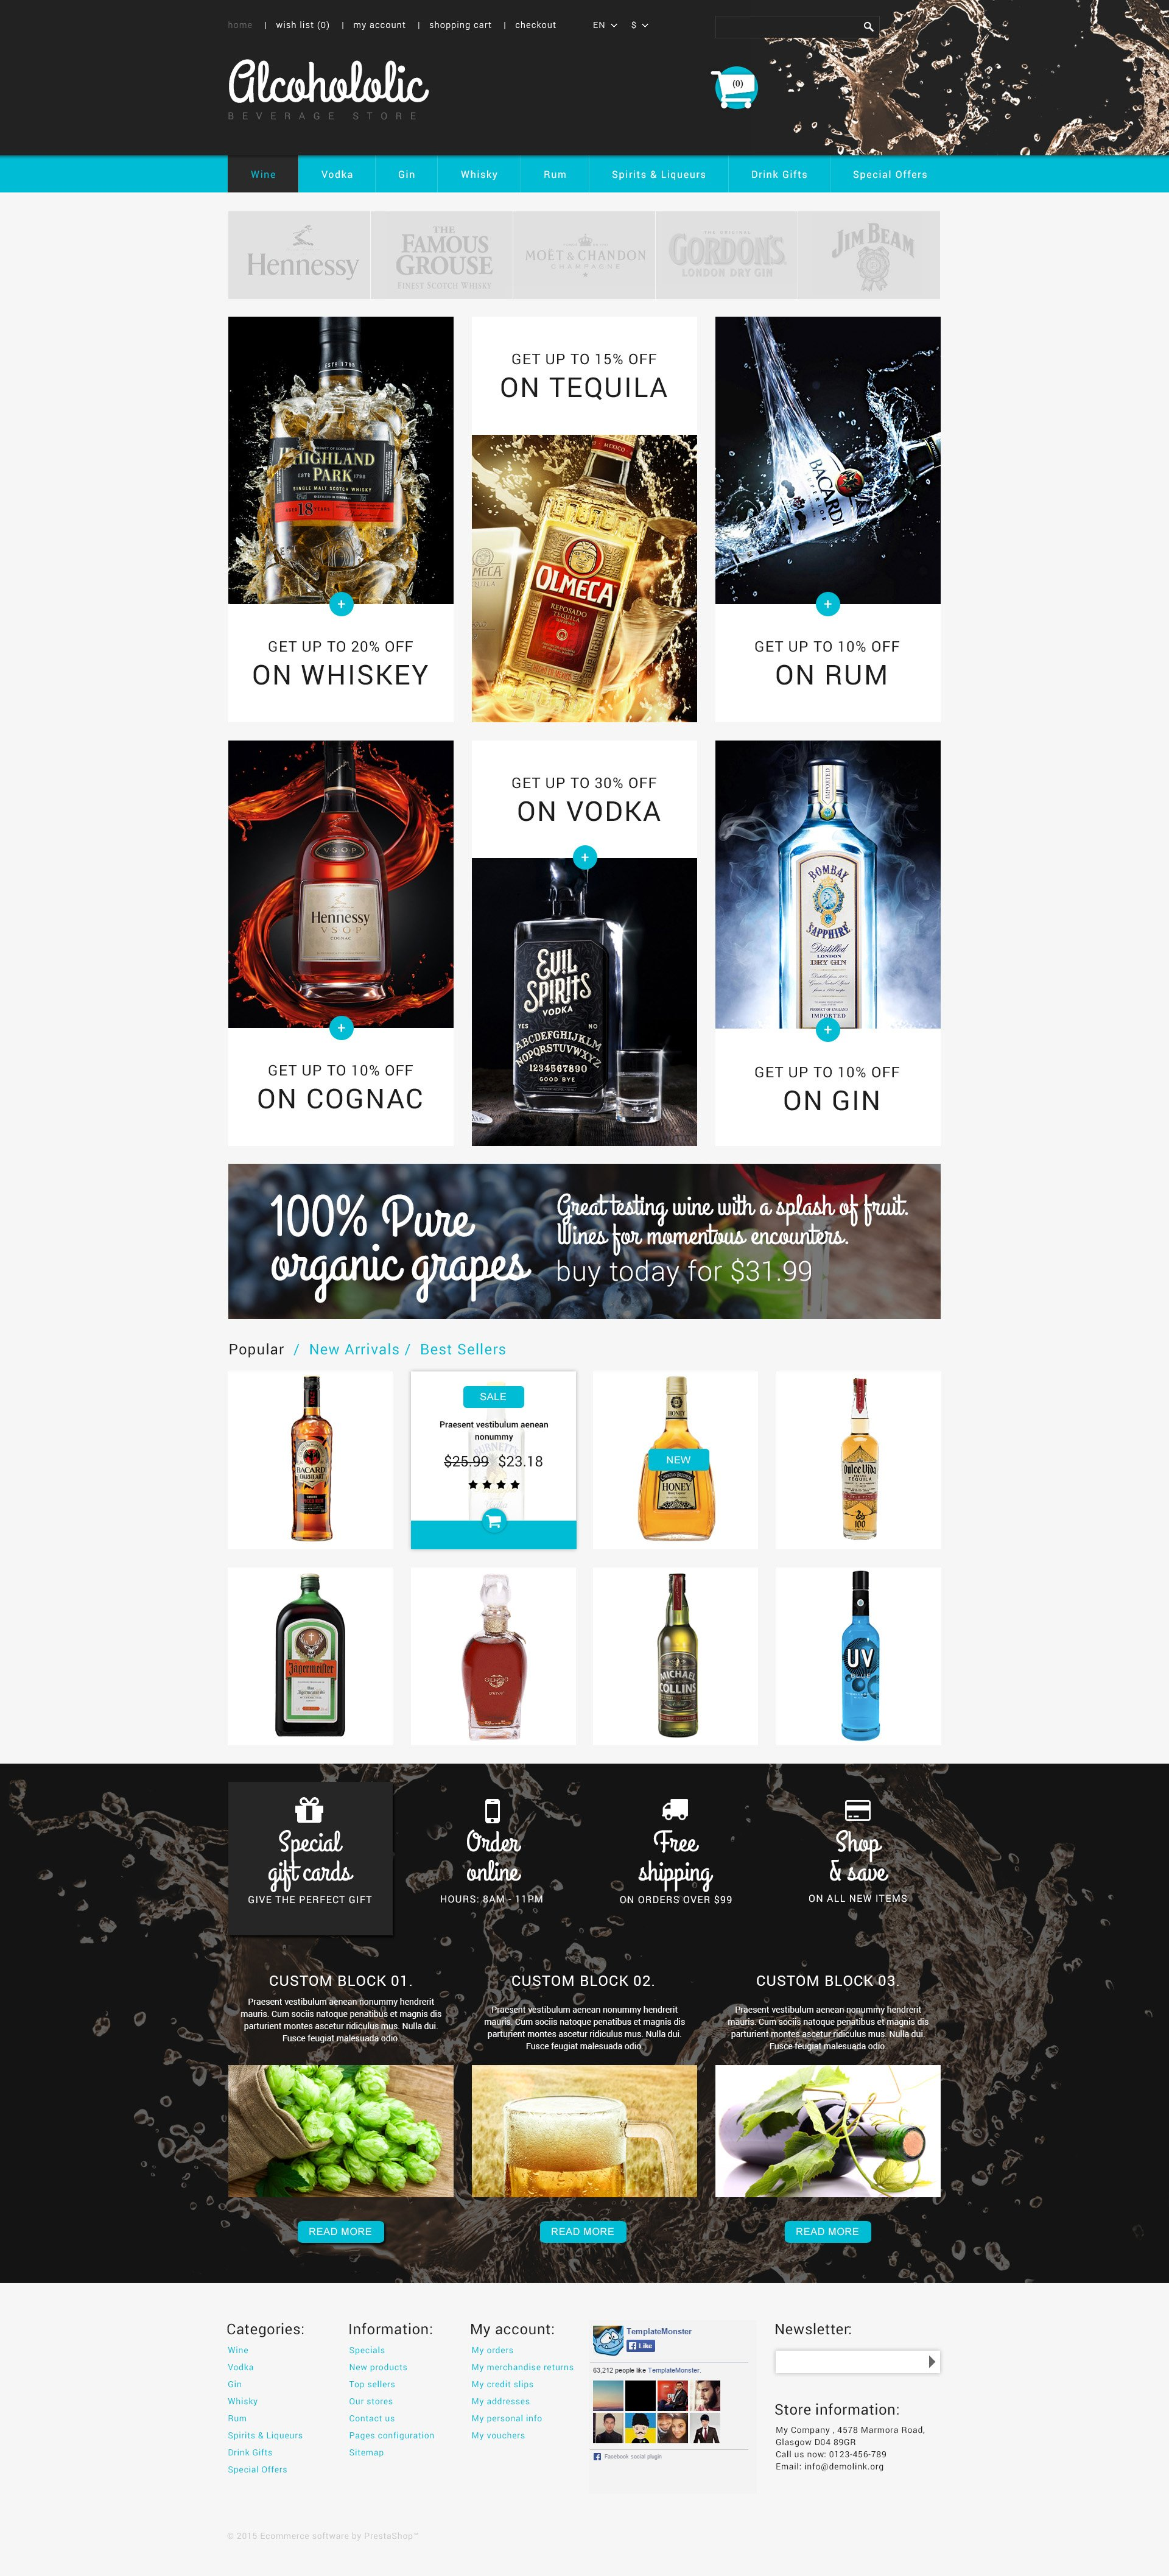 The Alcohololic Alcoholic PrestaShop Design 53586, one of the best PrestaShop themes of its kind (food & drink, most popular), also known as alcohololic alcoholic PrestaShop template, beverage store PrestaShop template, scoth PrestaShop template, whisky PrestaShop template, rum PrestaShop template, cognac PrestaShop template, armagnac PrestaShop template, gin PrestaShop template, jenever PrestaShop template, absinthe PrestaShop template, vodka PrestaShop template, tequila PrestaShop template, glenfiddich PrestaShop template, absolut PrestaShop template, vanilia PrestaShop template, ancnoc PrestaShop template, balvenie PrestaShop template, shopping cart and related with alcohololic alcoholic, beverage store, scoth, whisky, rum, cognac, armagnac, gin, jenever, absinthe, vodka, tequila, glenfiddich, absolut, vanilia, ancnoc, balvenie, shopping cart, etc.